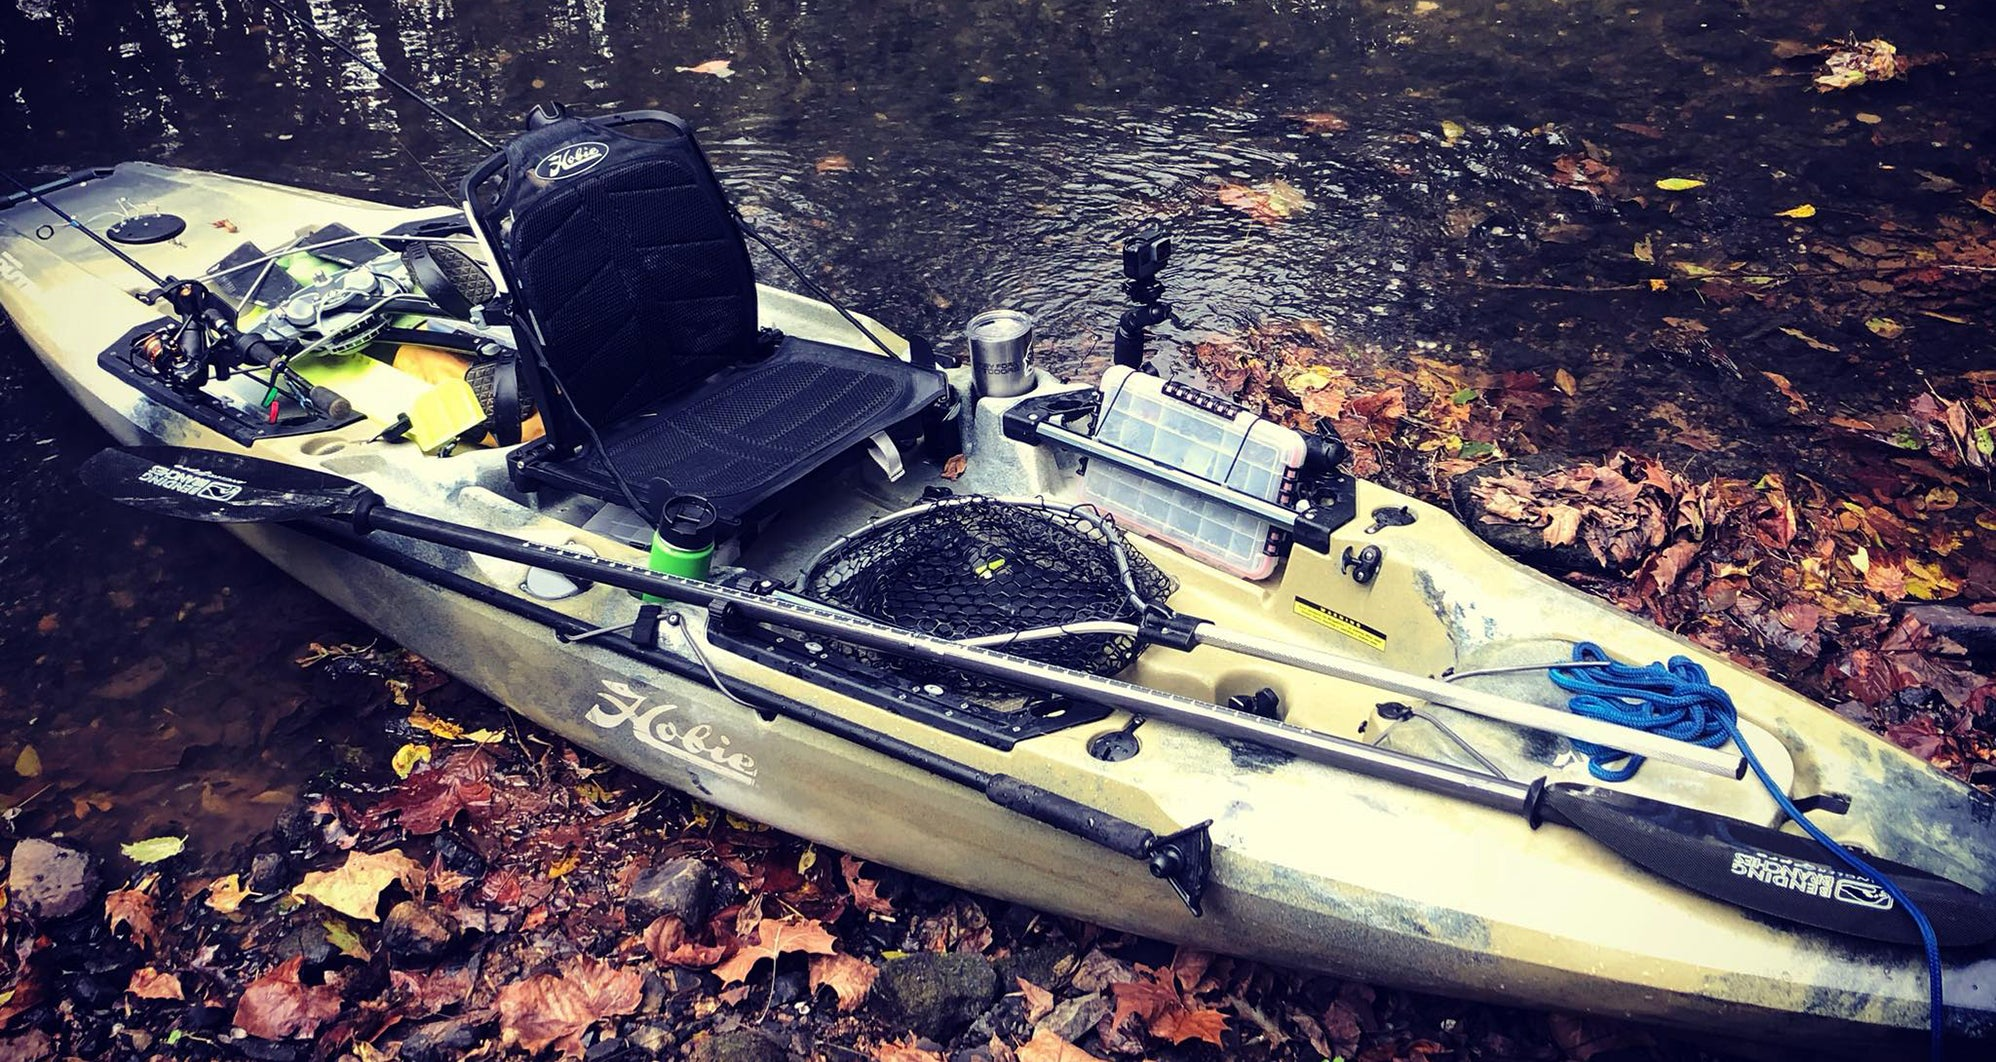 Hobie Outback Kayak on the bank of a shallow creek with fall foilage floating in the water